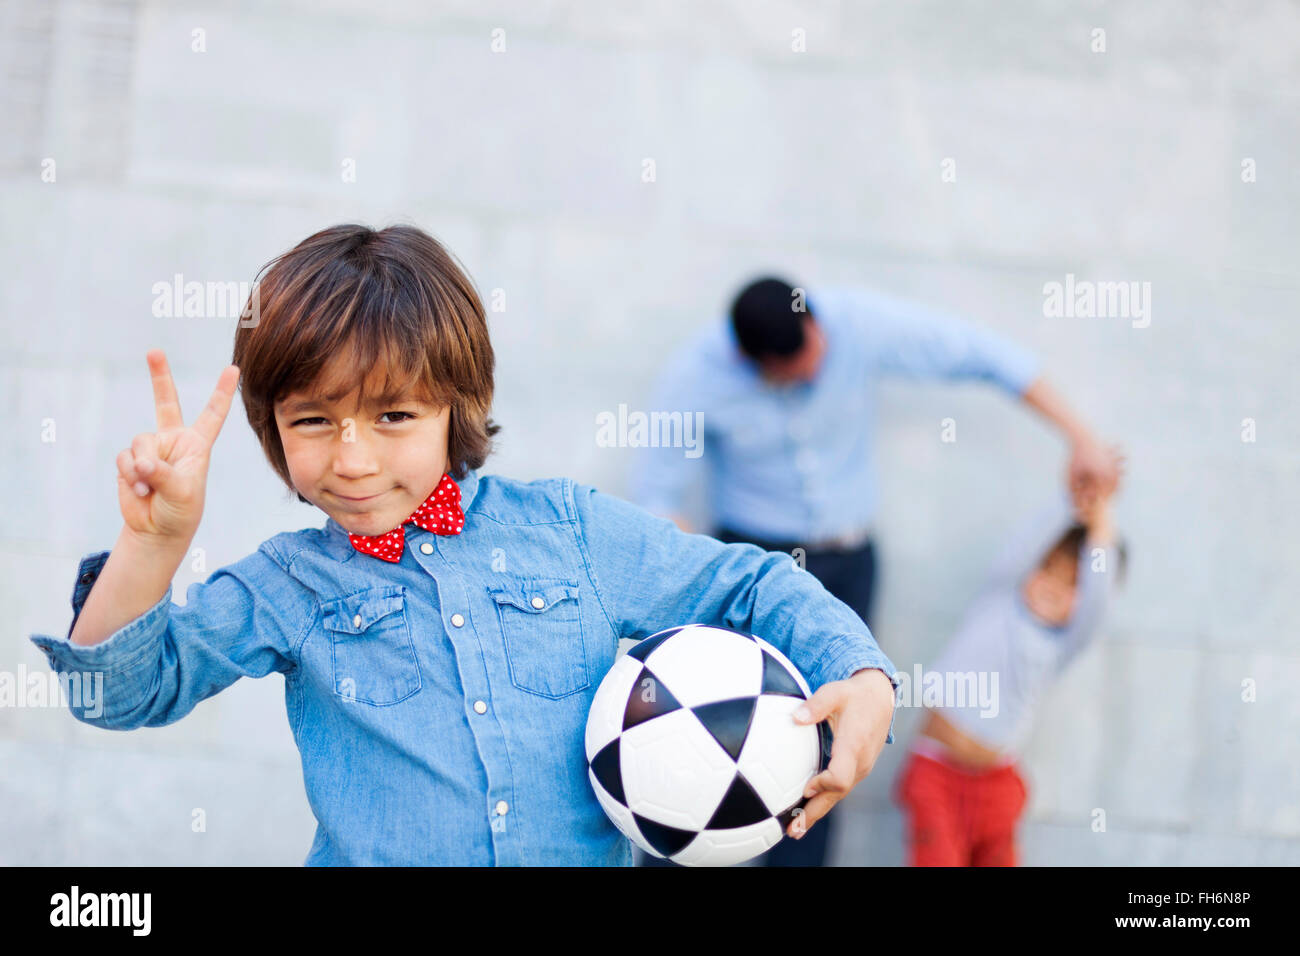 Boy holding soccer ball and making victory sign, family playing in background - Stock Image